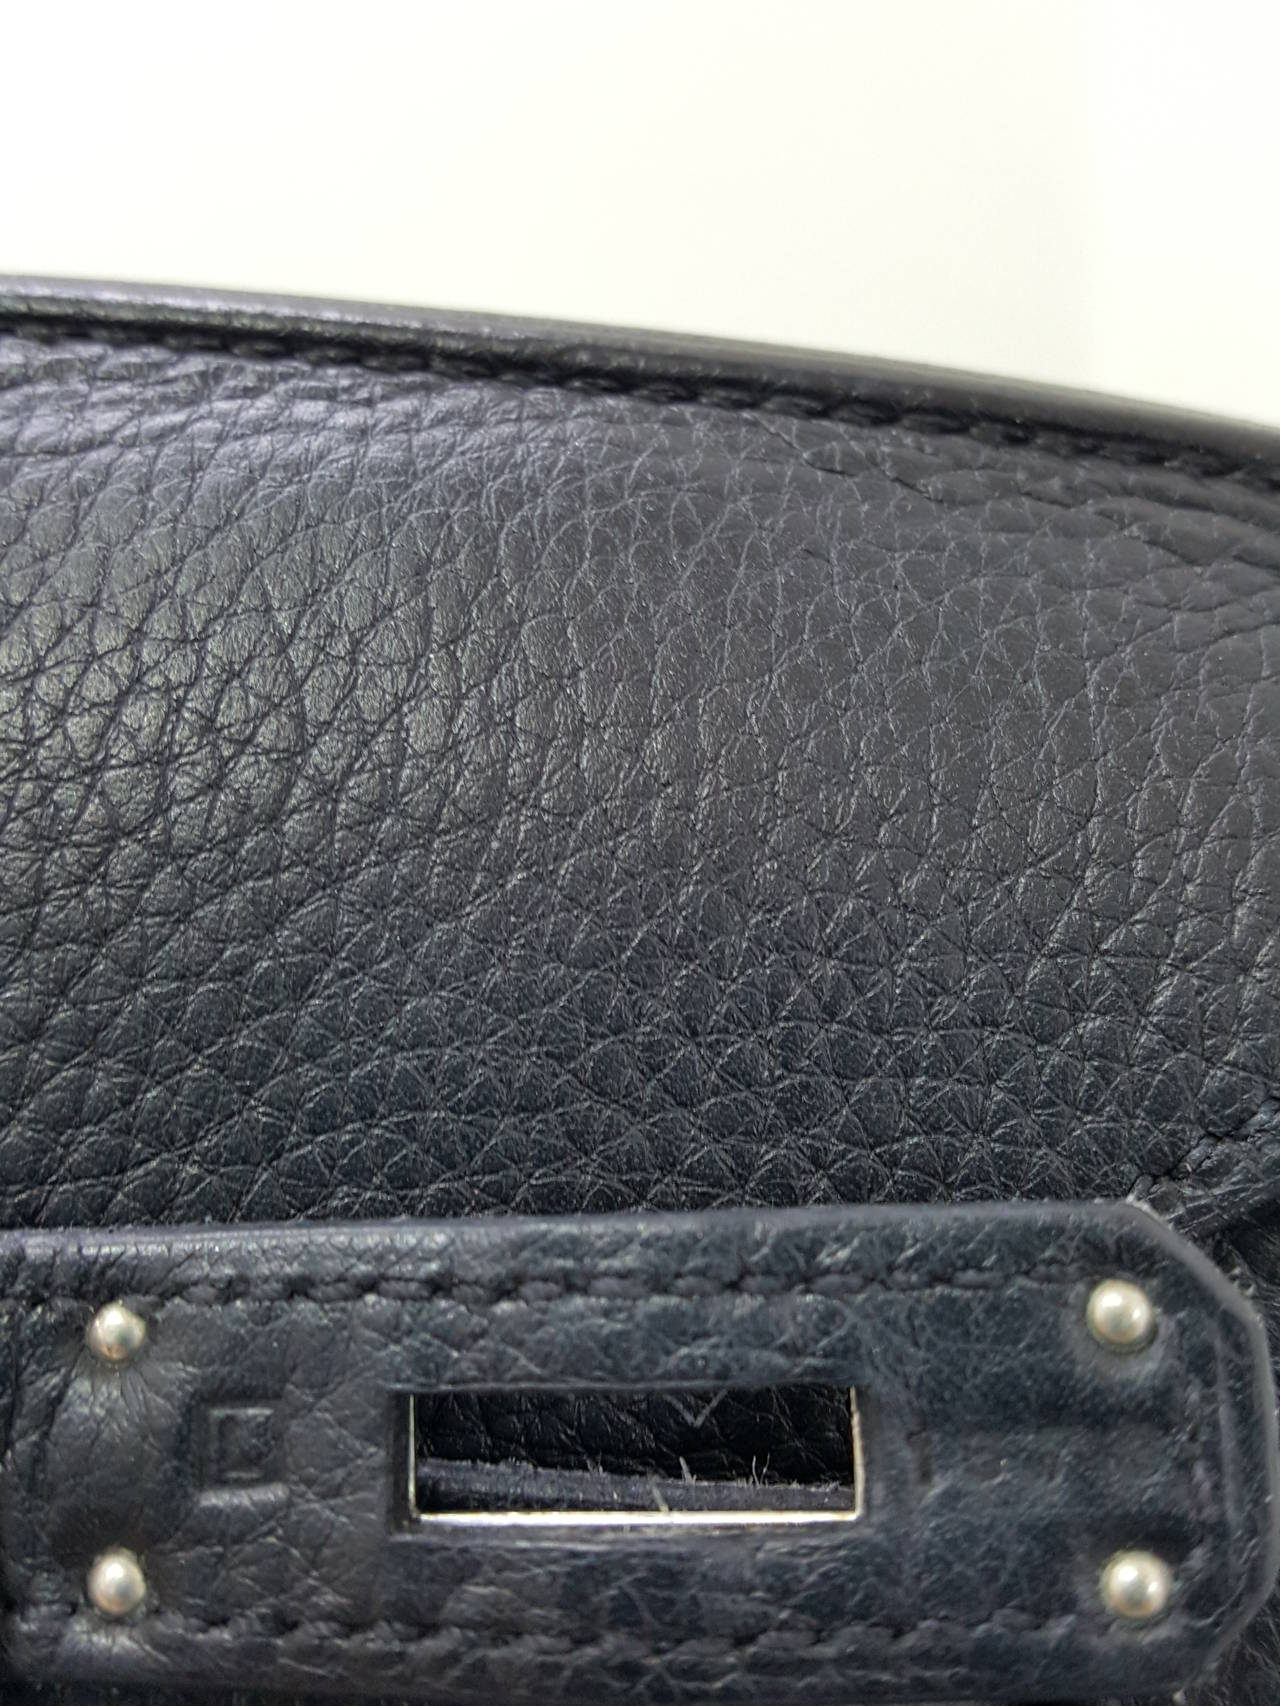 HERMES Birkin 35 CM In Black Clemence Leather With Palladium Hardware. For Sale 5